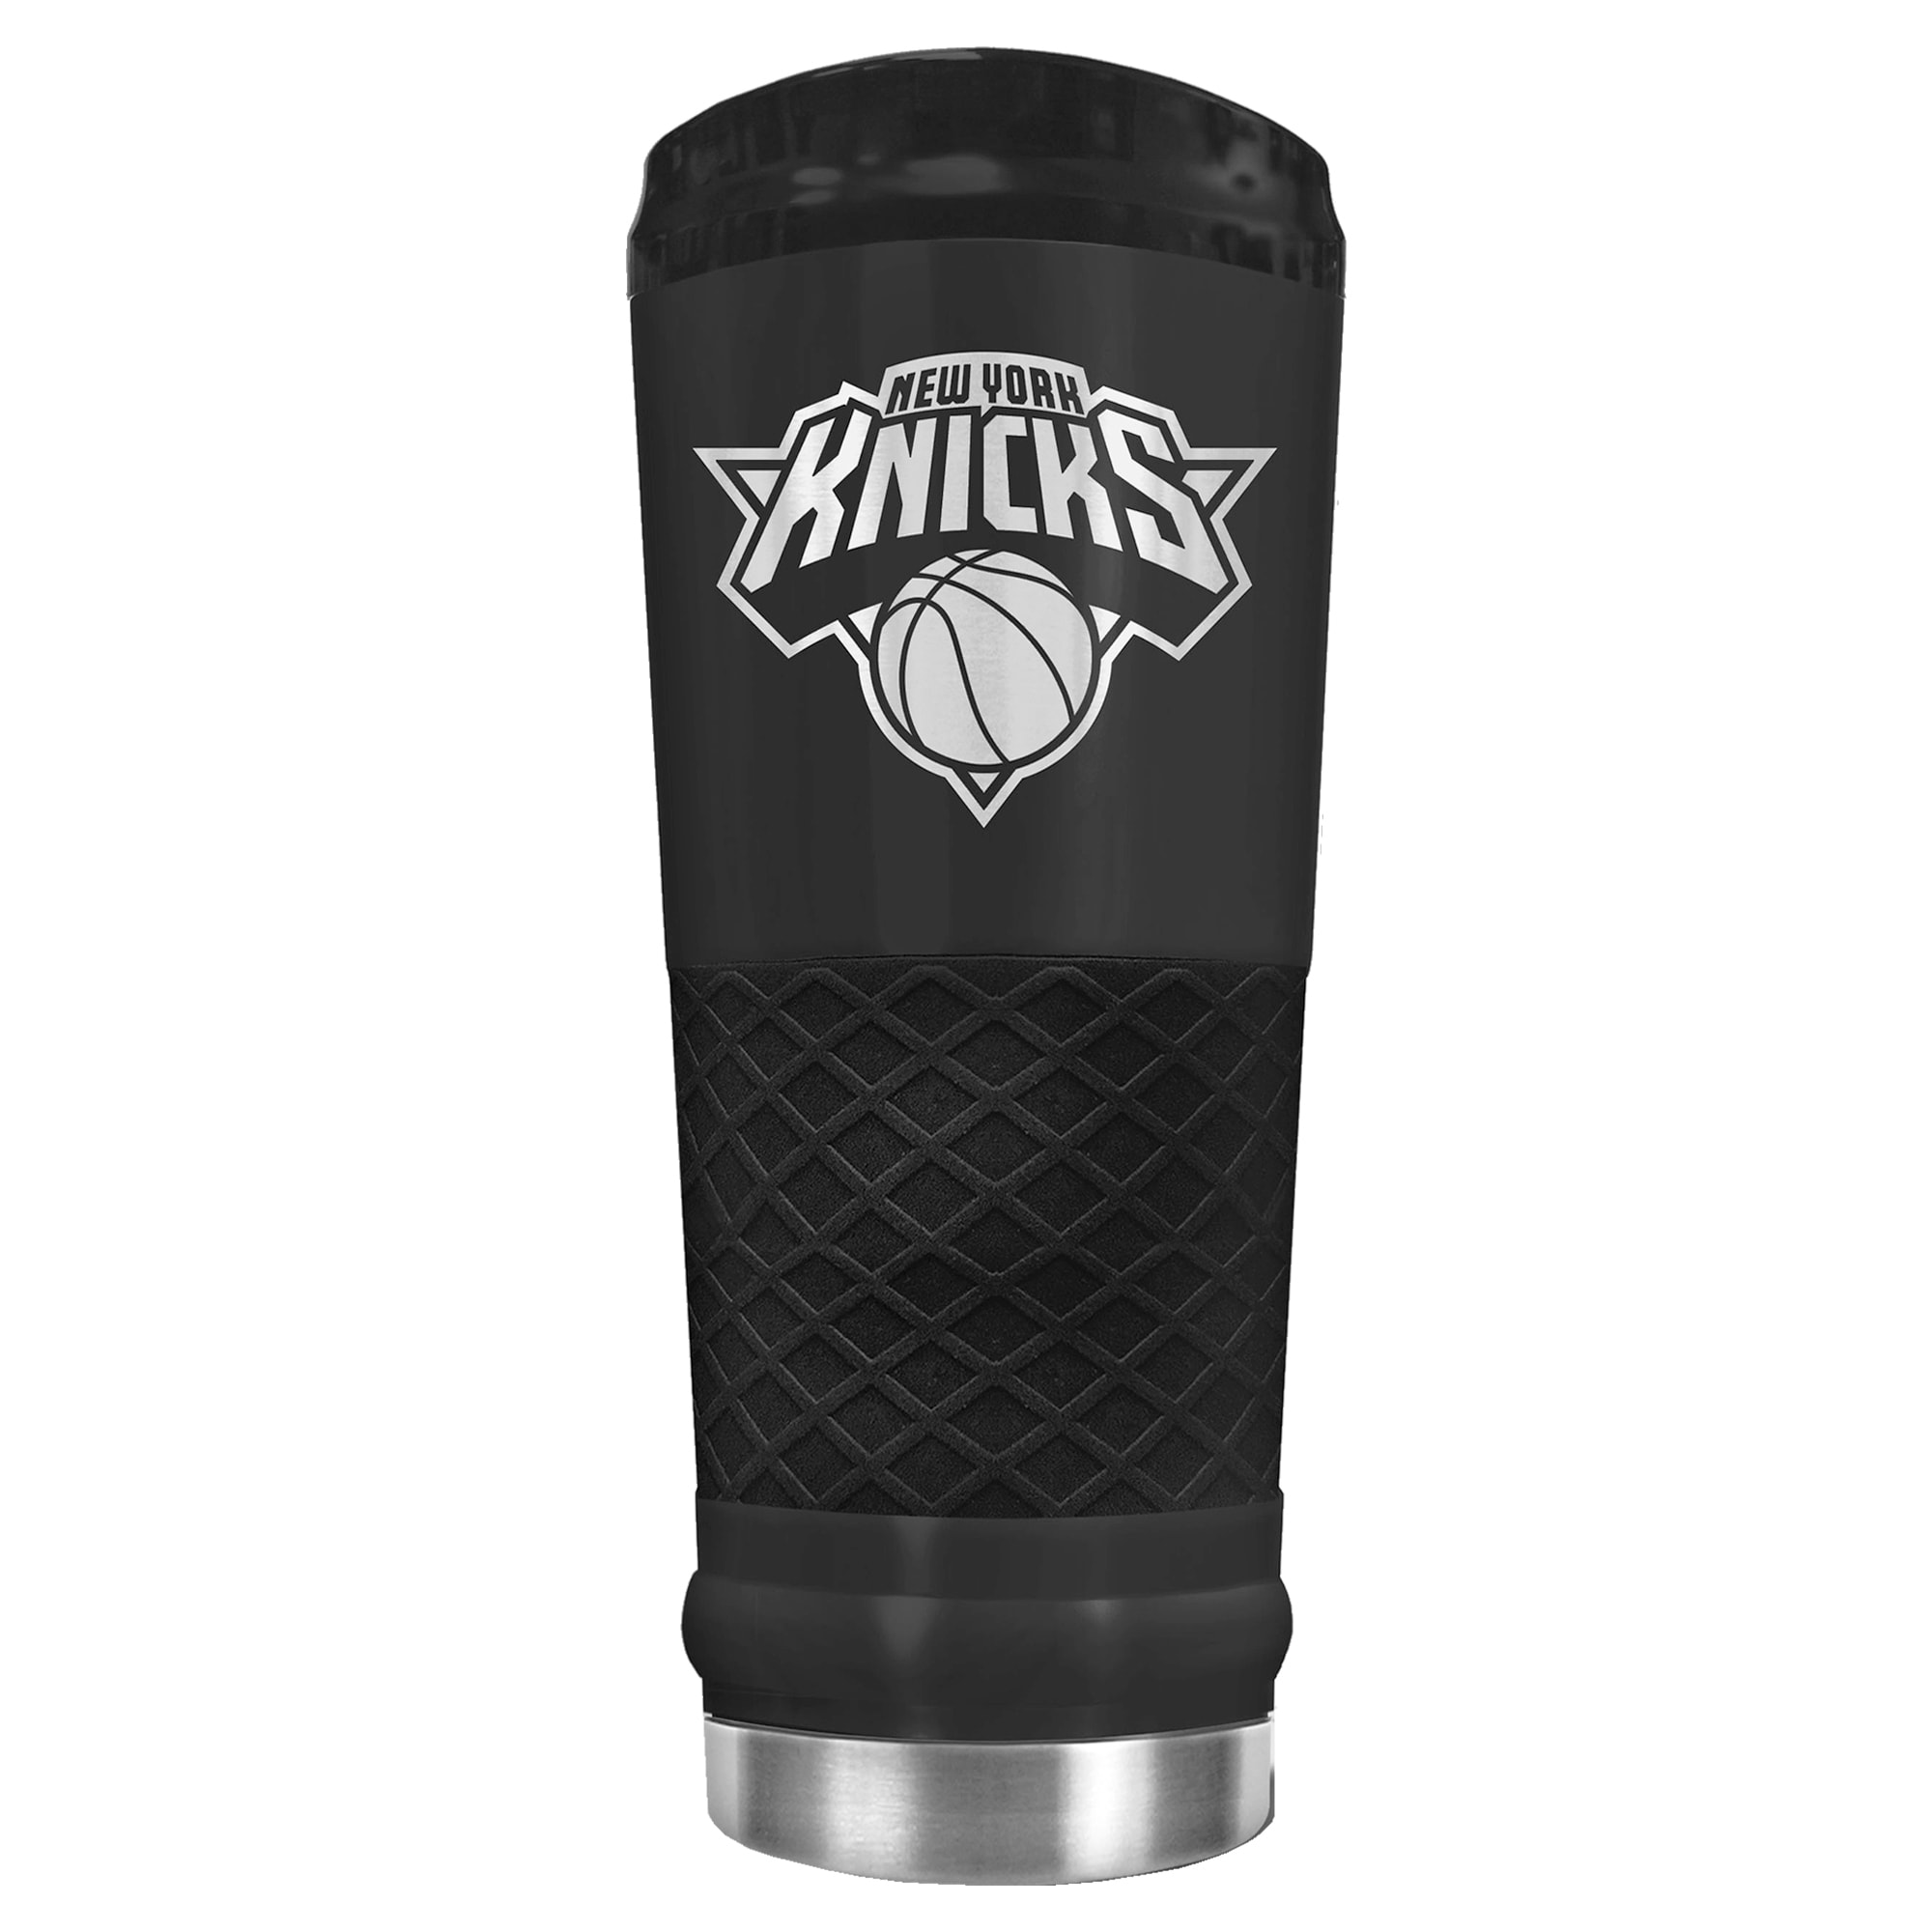 New York Knicks Stealth Matte 24oz Tumbler - Black